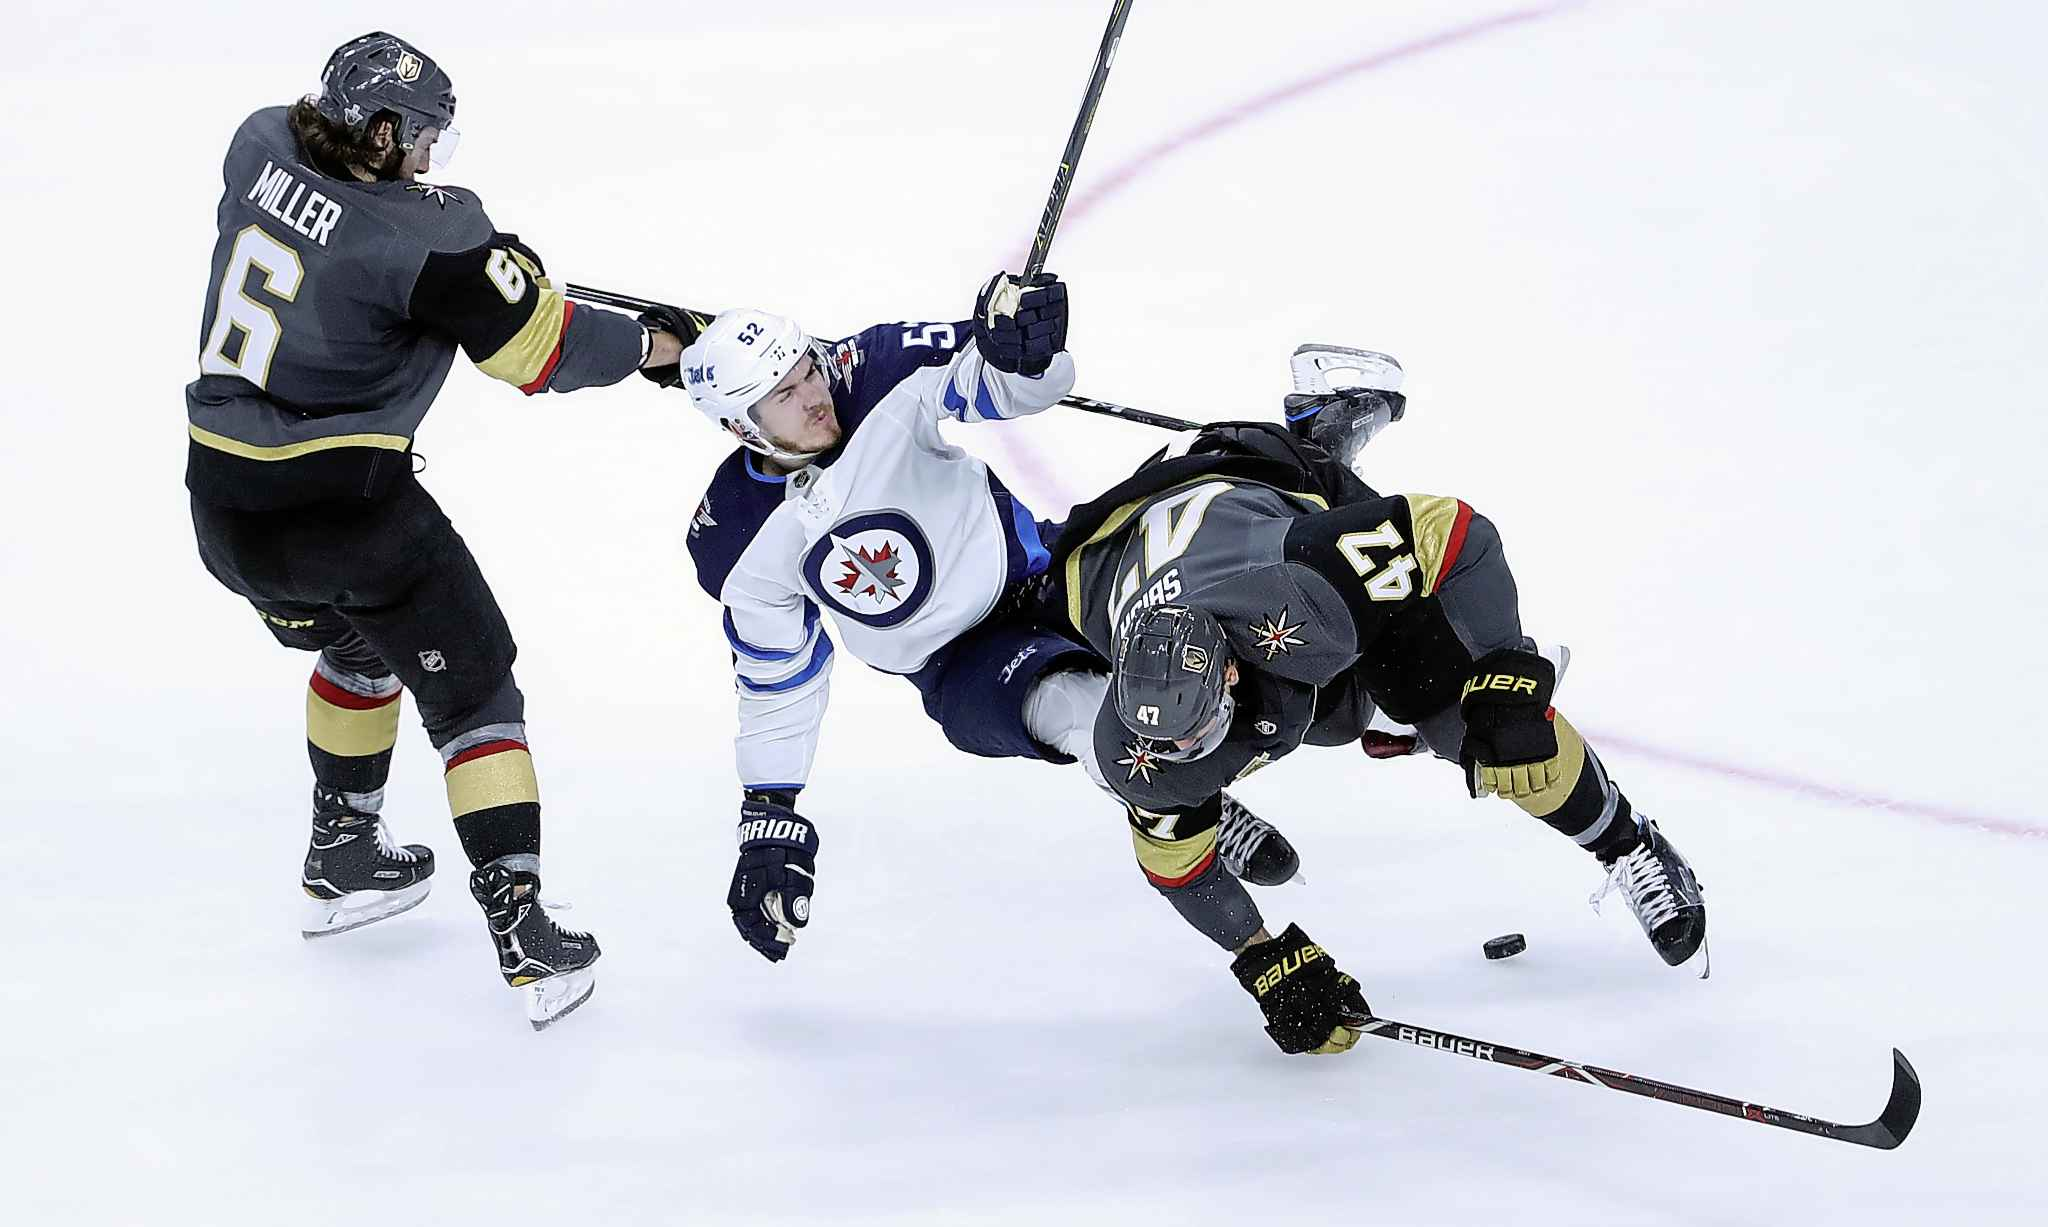 Vegas Golden Knights' Luca Sbisa (47) hits Winnipeg Jets' Jack Roslovic (52) in front of Colin Miller (6) during the second period of game 4 of their Western Conference Final series in Las Vegas, Friday, May 18, 2018.